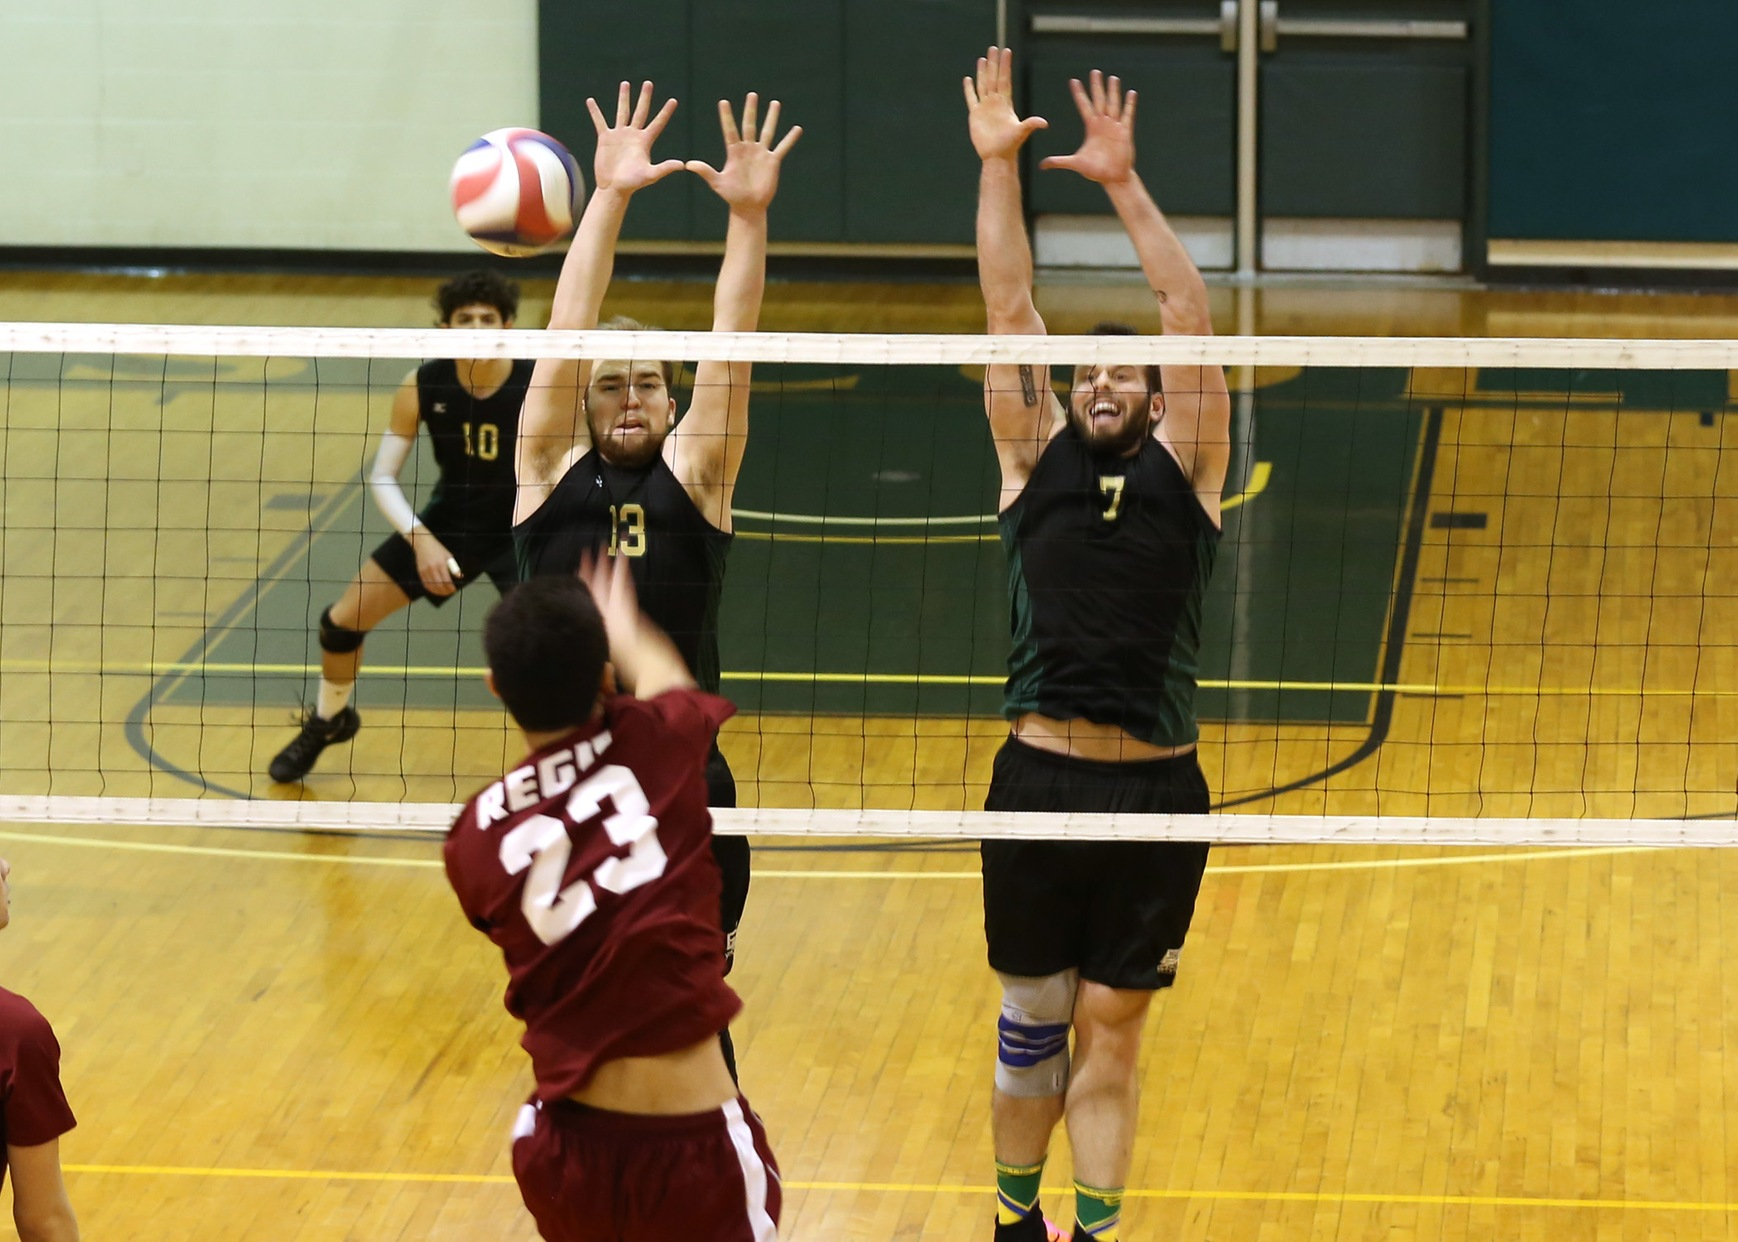 Men's Volleyball Sweeps Newbury On Senior Day